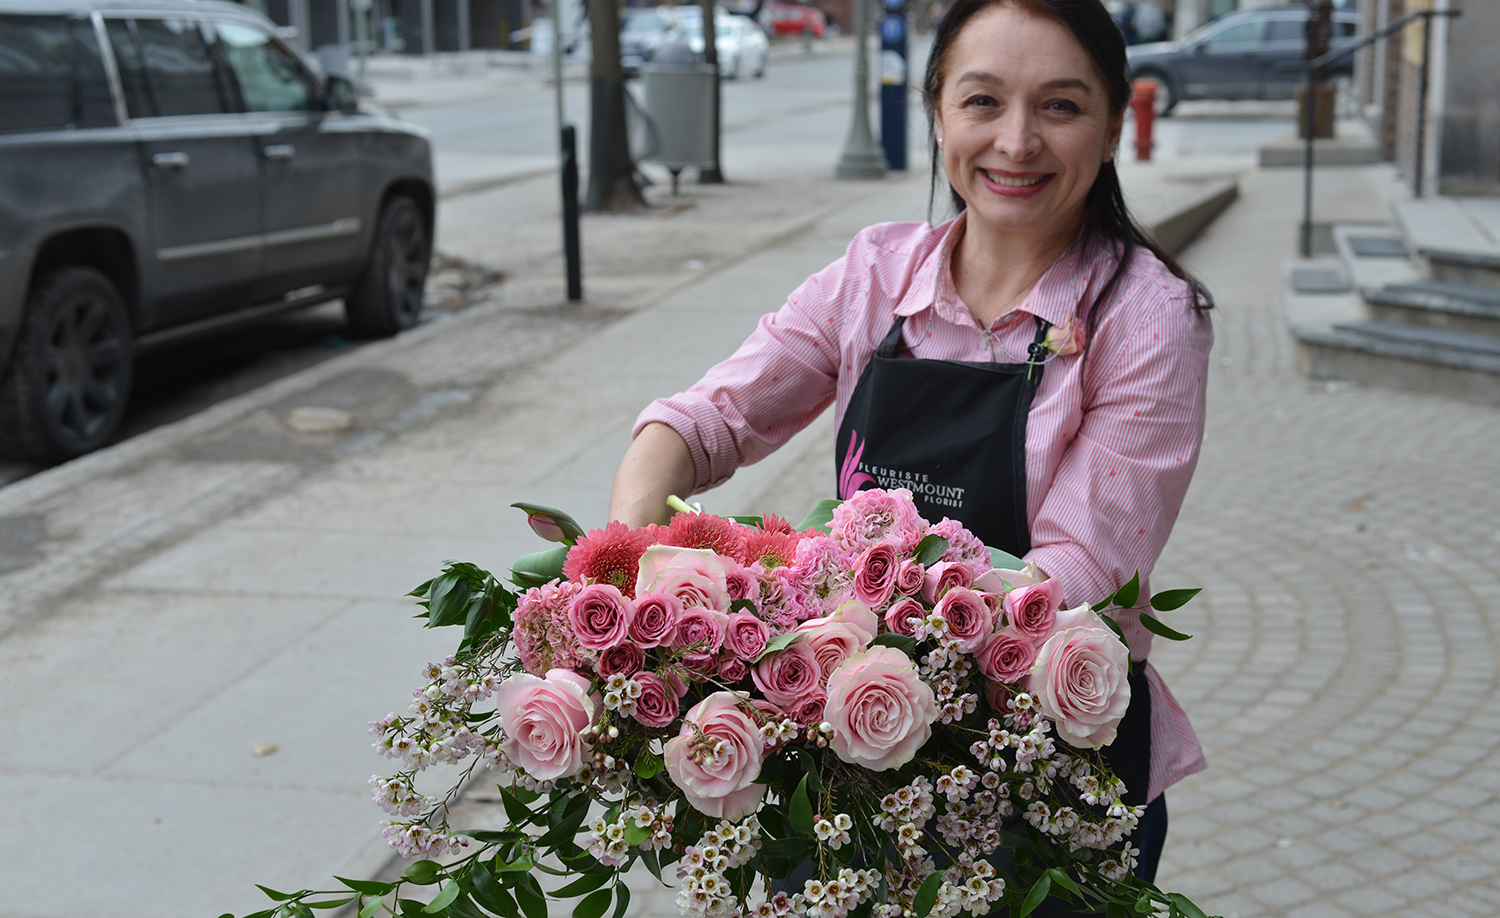 Westmount Florist employee holding a pink bouquet of flowers